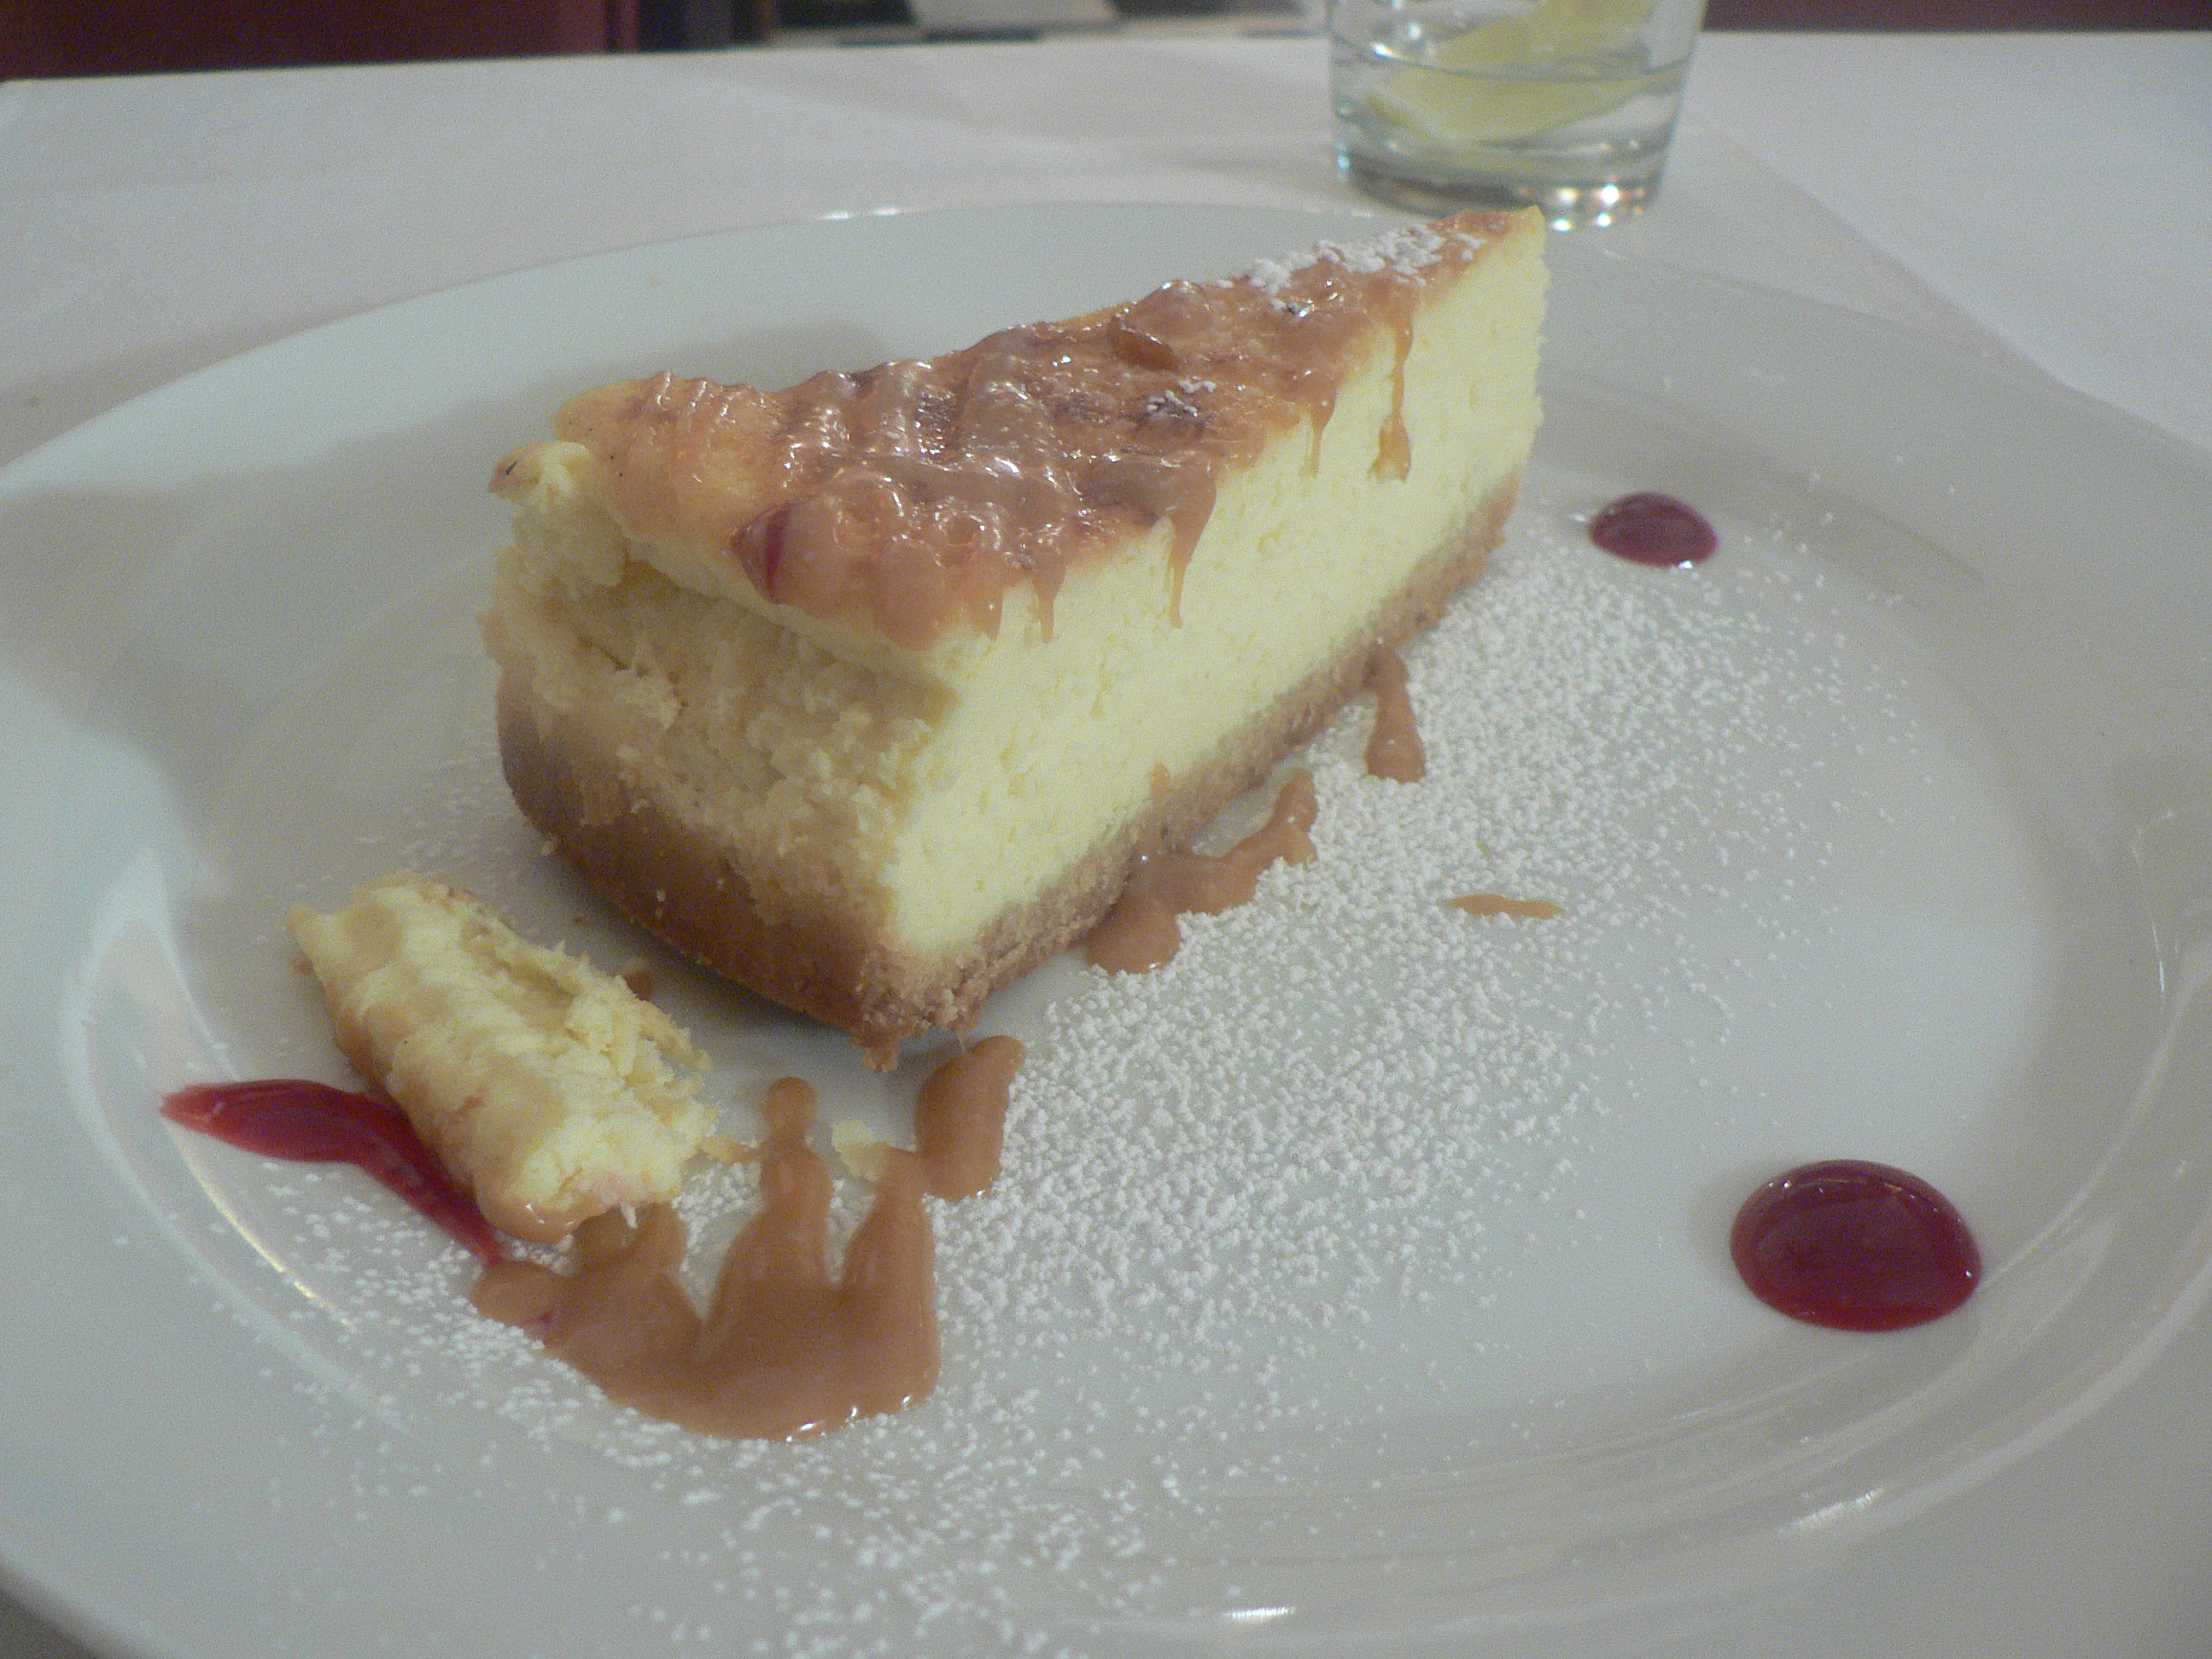 File:Ricotta cheesecake with caramel sauce.jpg - Wikimedia ...